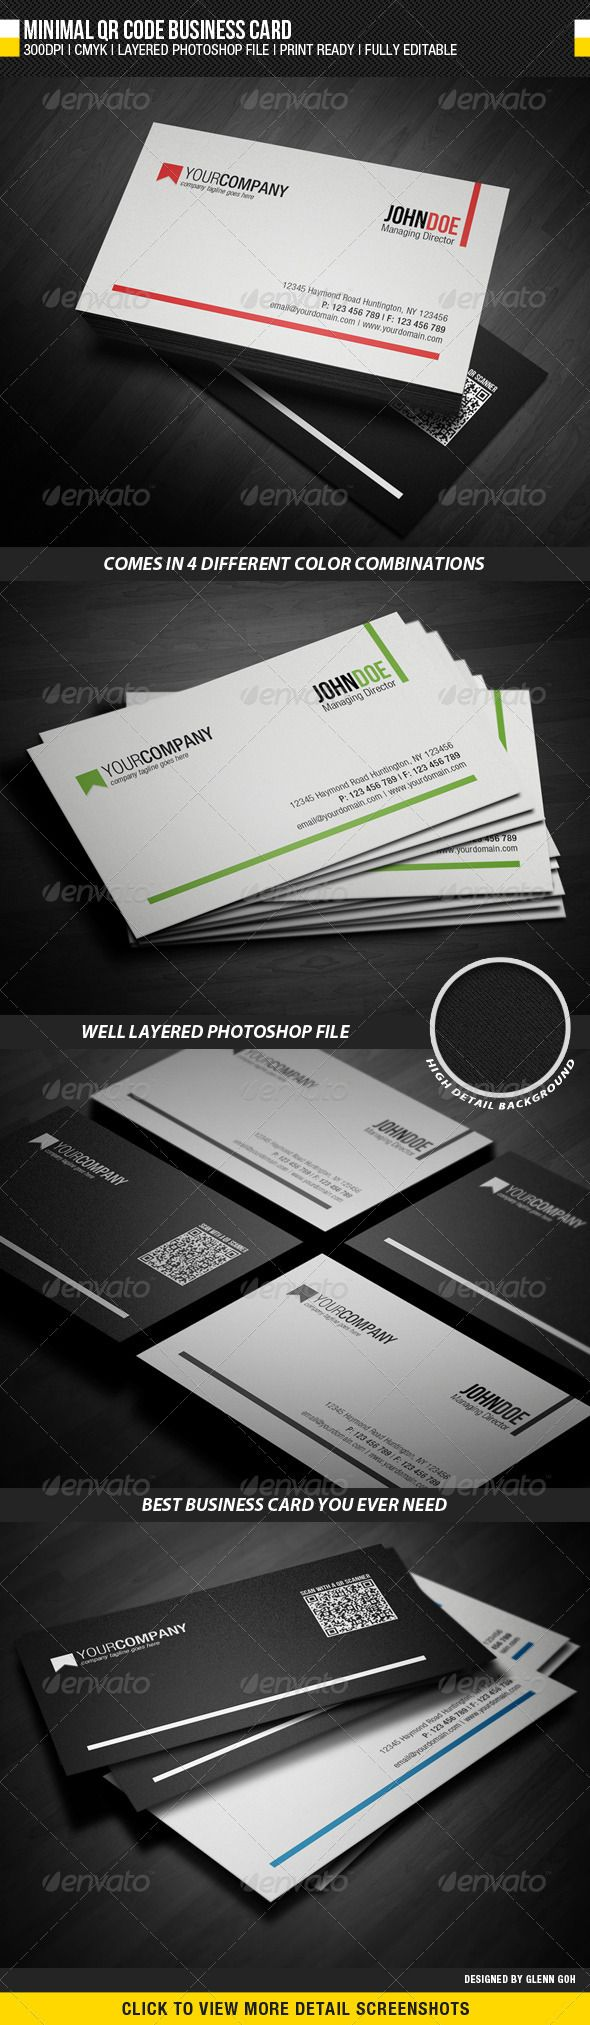 37 Best Ms Puro Images On Pinterest Business Card Design Business